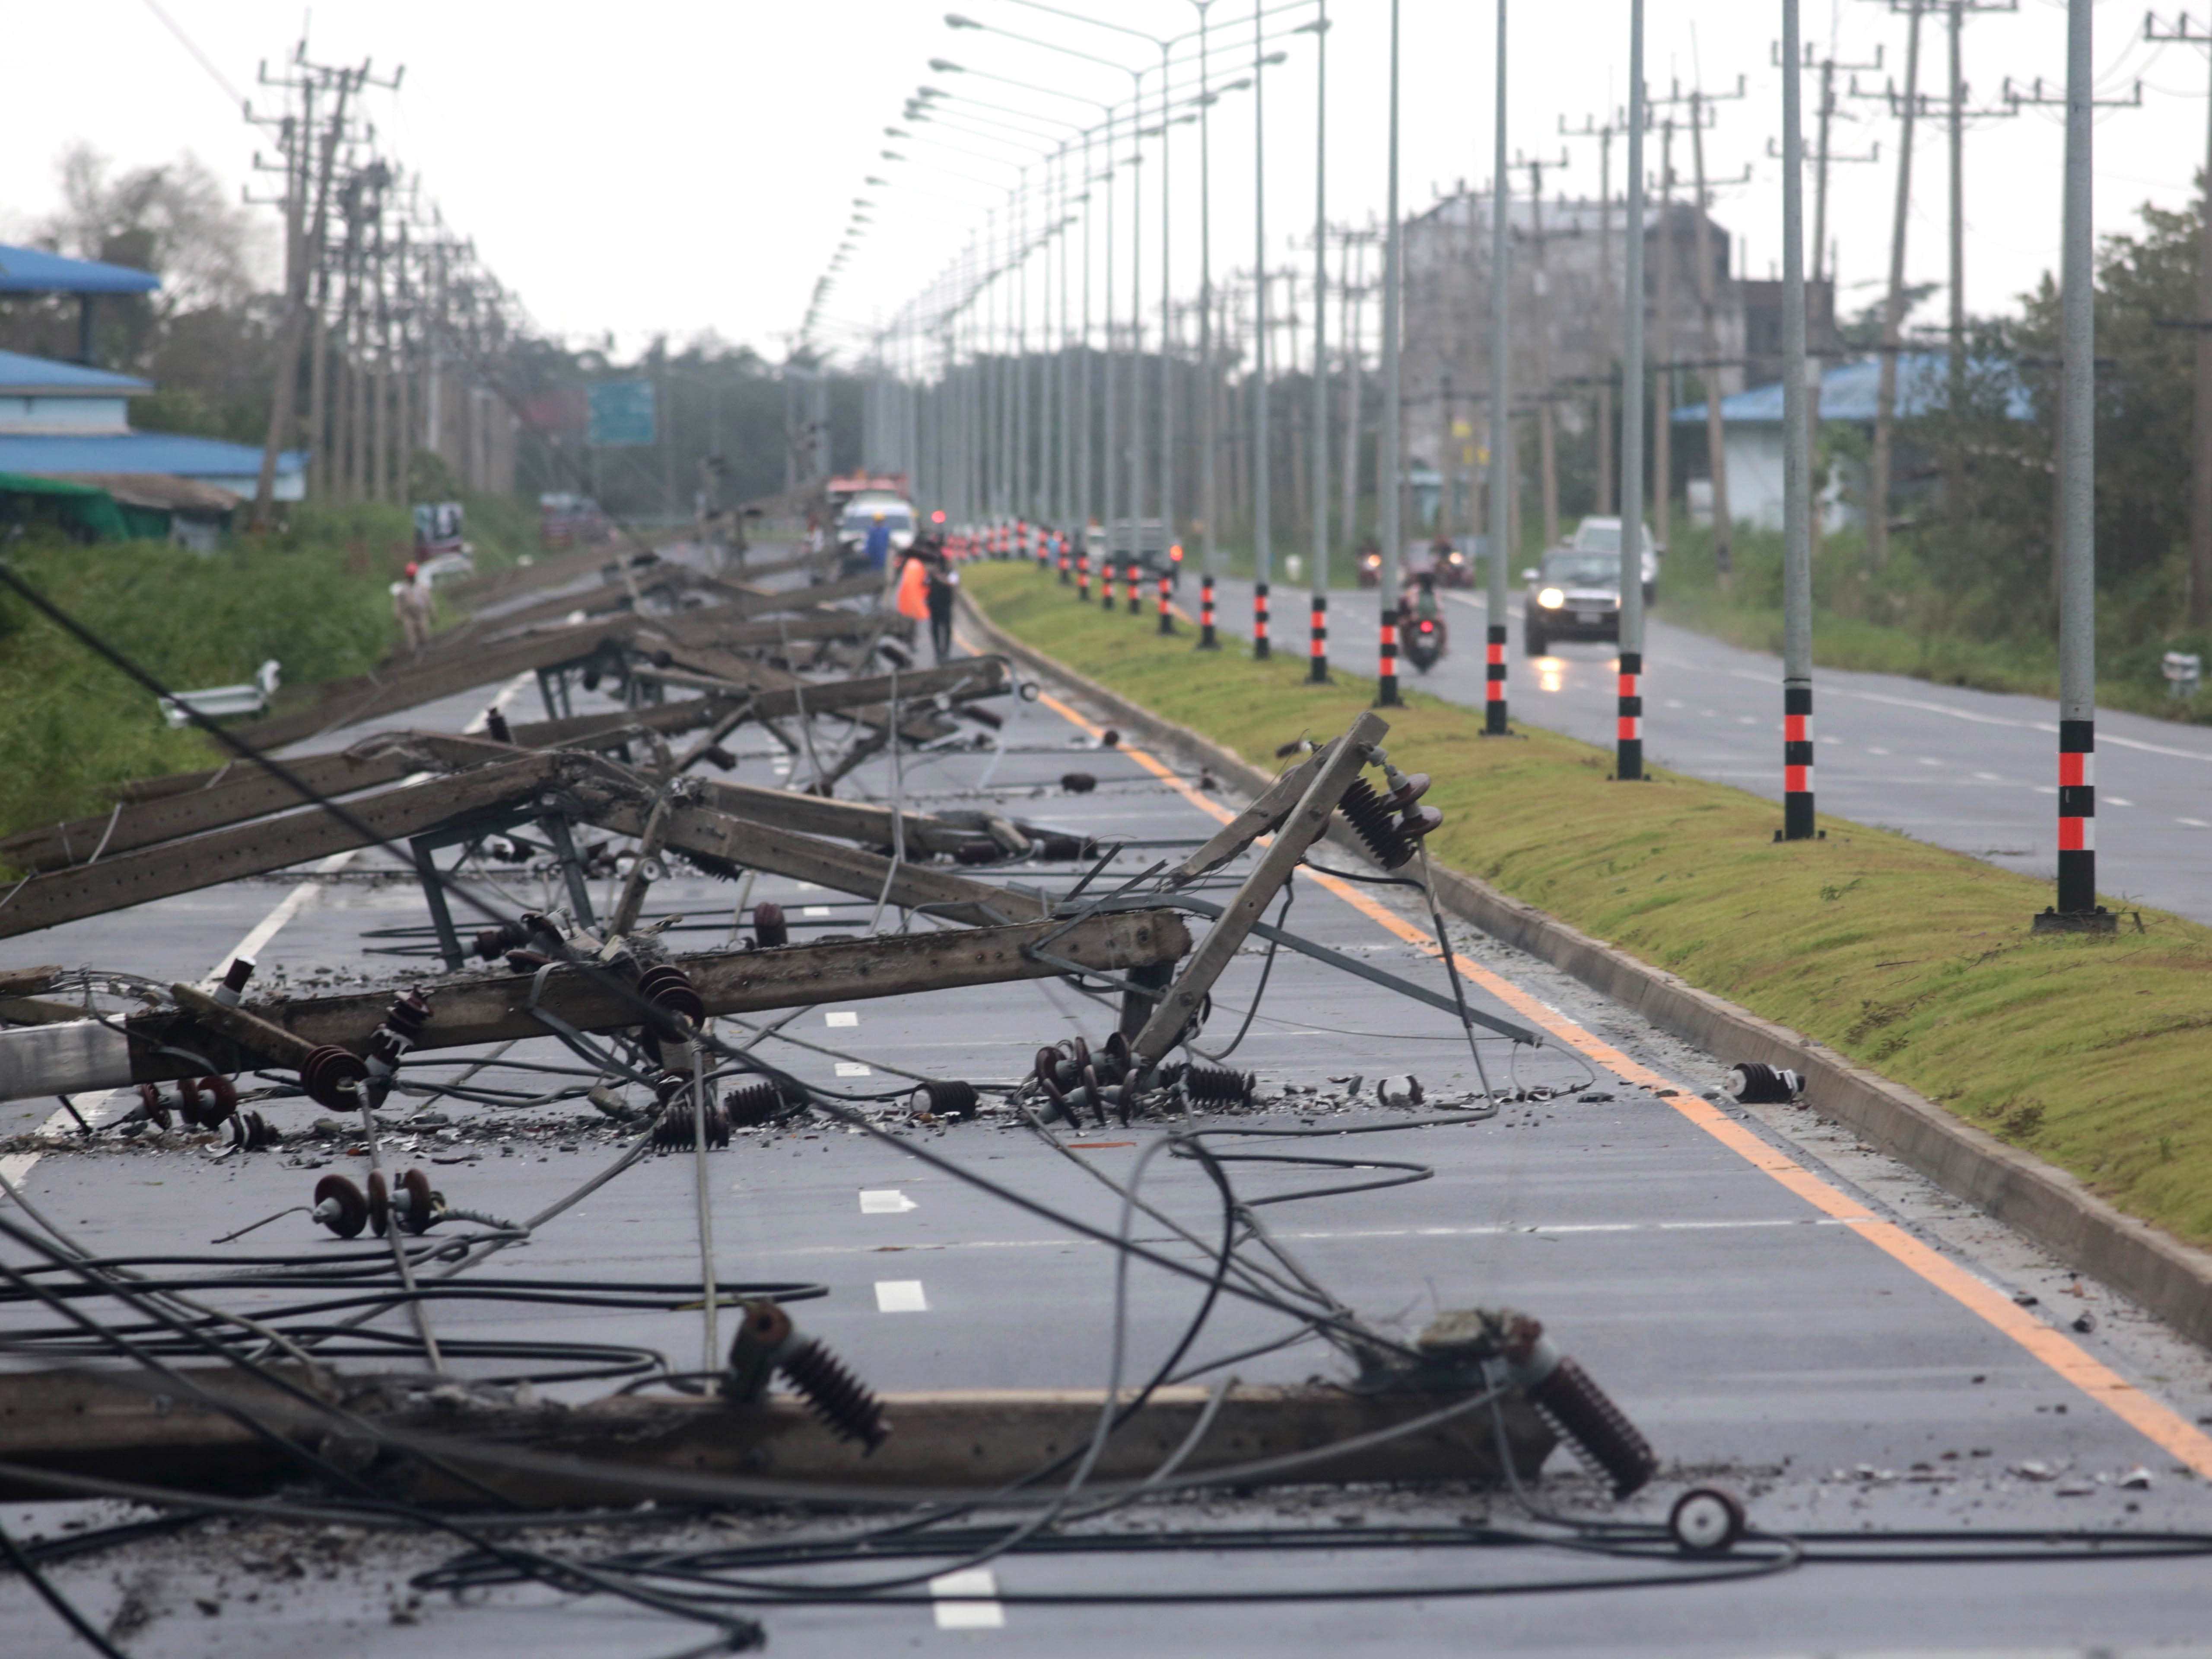 epa07261518 A view of collapsed electricity posts caused by tropical storm Pabuk along a main street at Pak Phanang district, Nakhon Si Thammarat province, southern Thailand, 04 January 2019. Thousands of people evacuated from their homes after 11 southern coast provinces have been put on a weather warning as tropical storm Pabuk brought heavy downpours, strong winds and high waves. Pabuk is the first tropical storm to hit the country outside of the monsoon season in nearly 30 years, media reported.  EPA-EFE/STRINGER THAILAND OUT ORG XMIT: RUN06